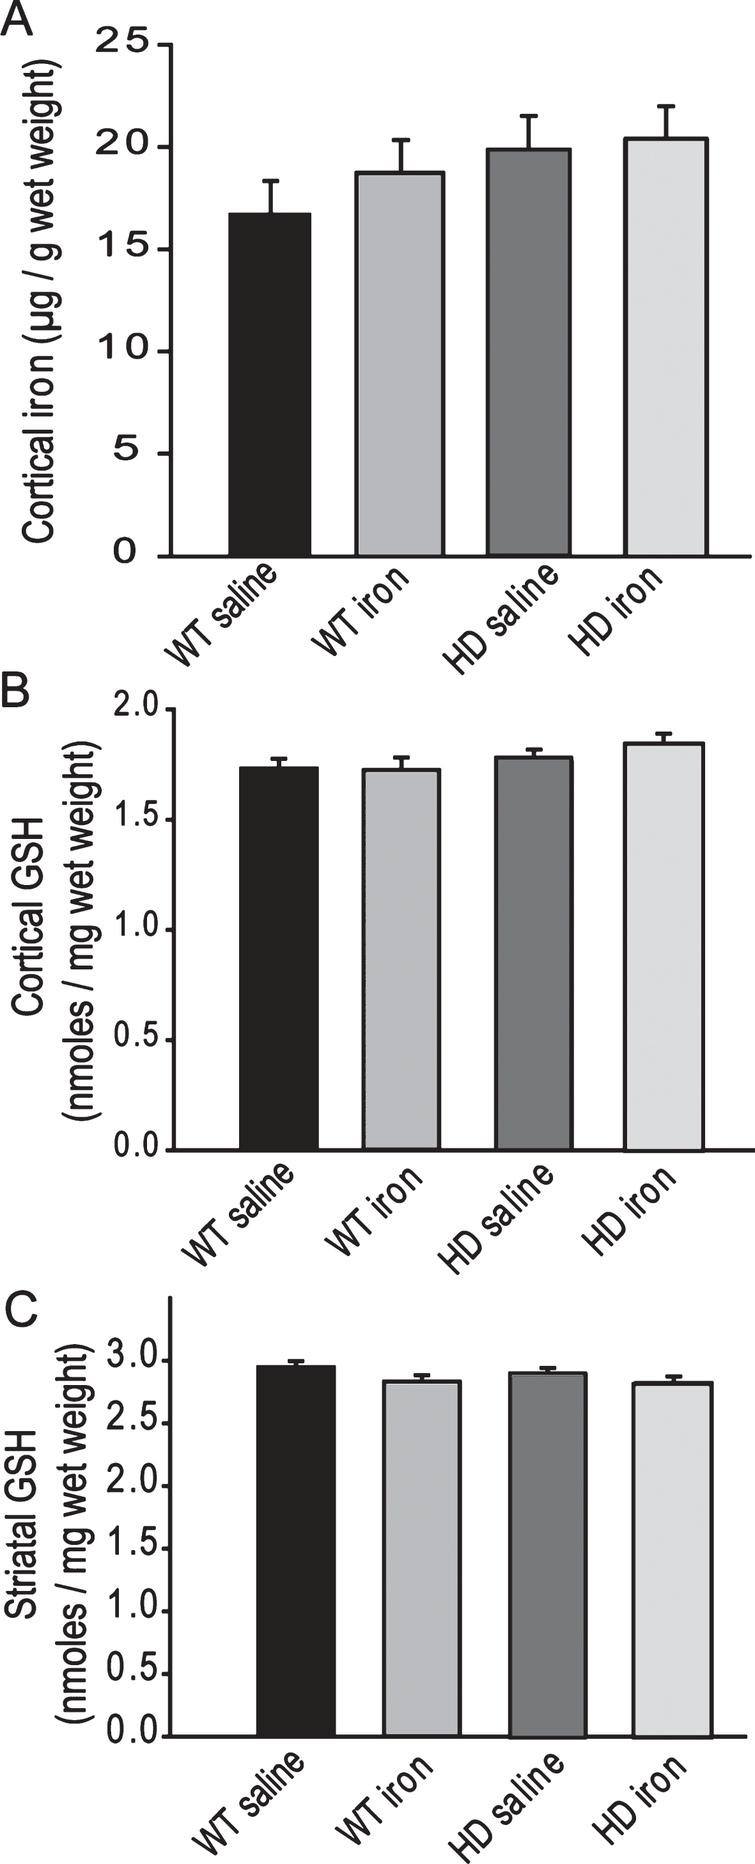 Neonatal iron supplementation does not alter brain iron or glutathione. Mice were supplemented at 10–17 days and sacrificed at 1-year of age. A. Cerebro-cortical iron is not altered by HD or the presence of neonatal iron supplementation. n=6–7, B-C. Glutathione levels in cerebral cortex (B) and striatum (C) are not altered by HD or neonatal iron supplementation. n=9–15 for cortex and 9–12 for striatum.